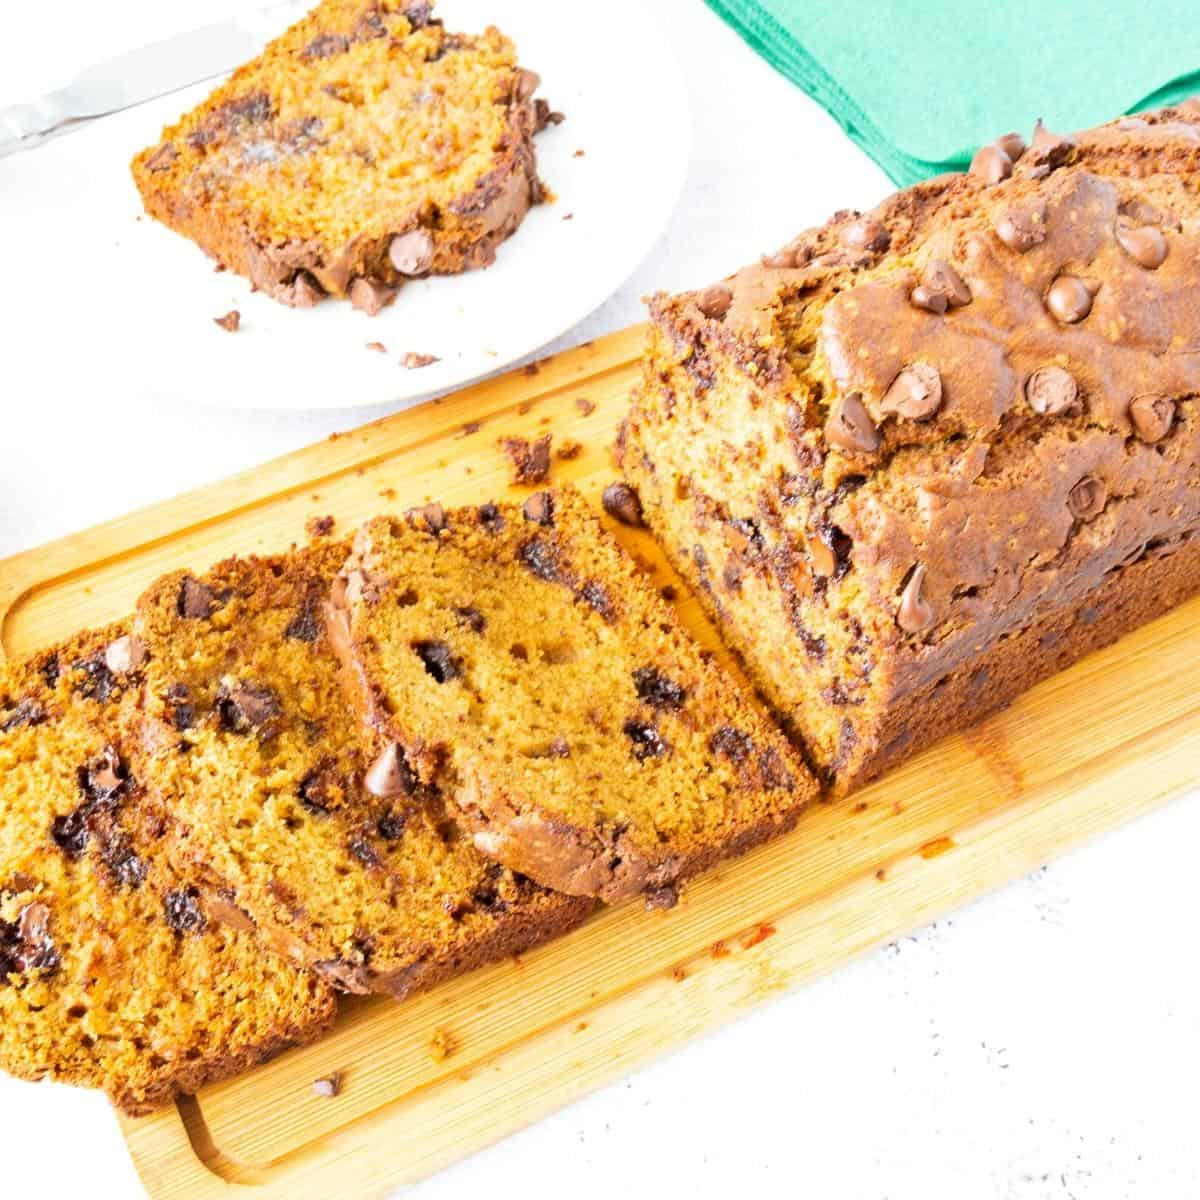 Slices of pumpkin bread with chocolate chips.